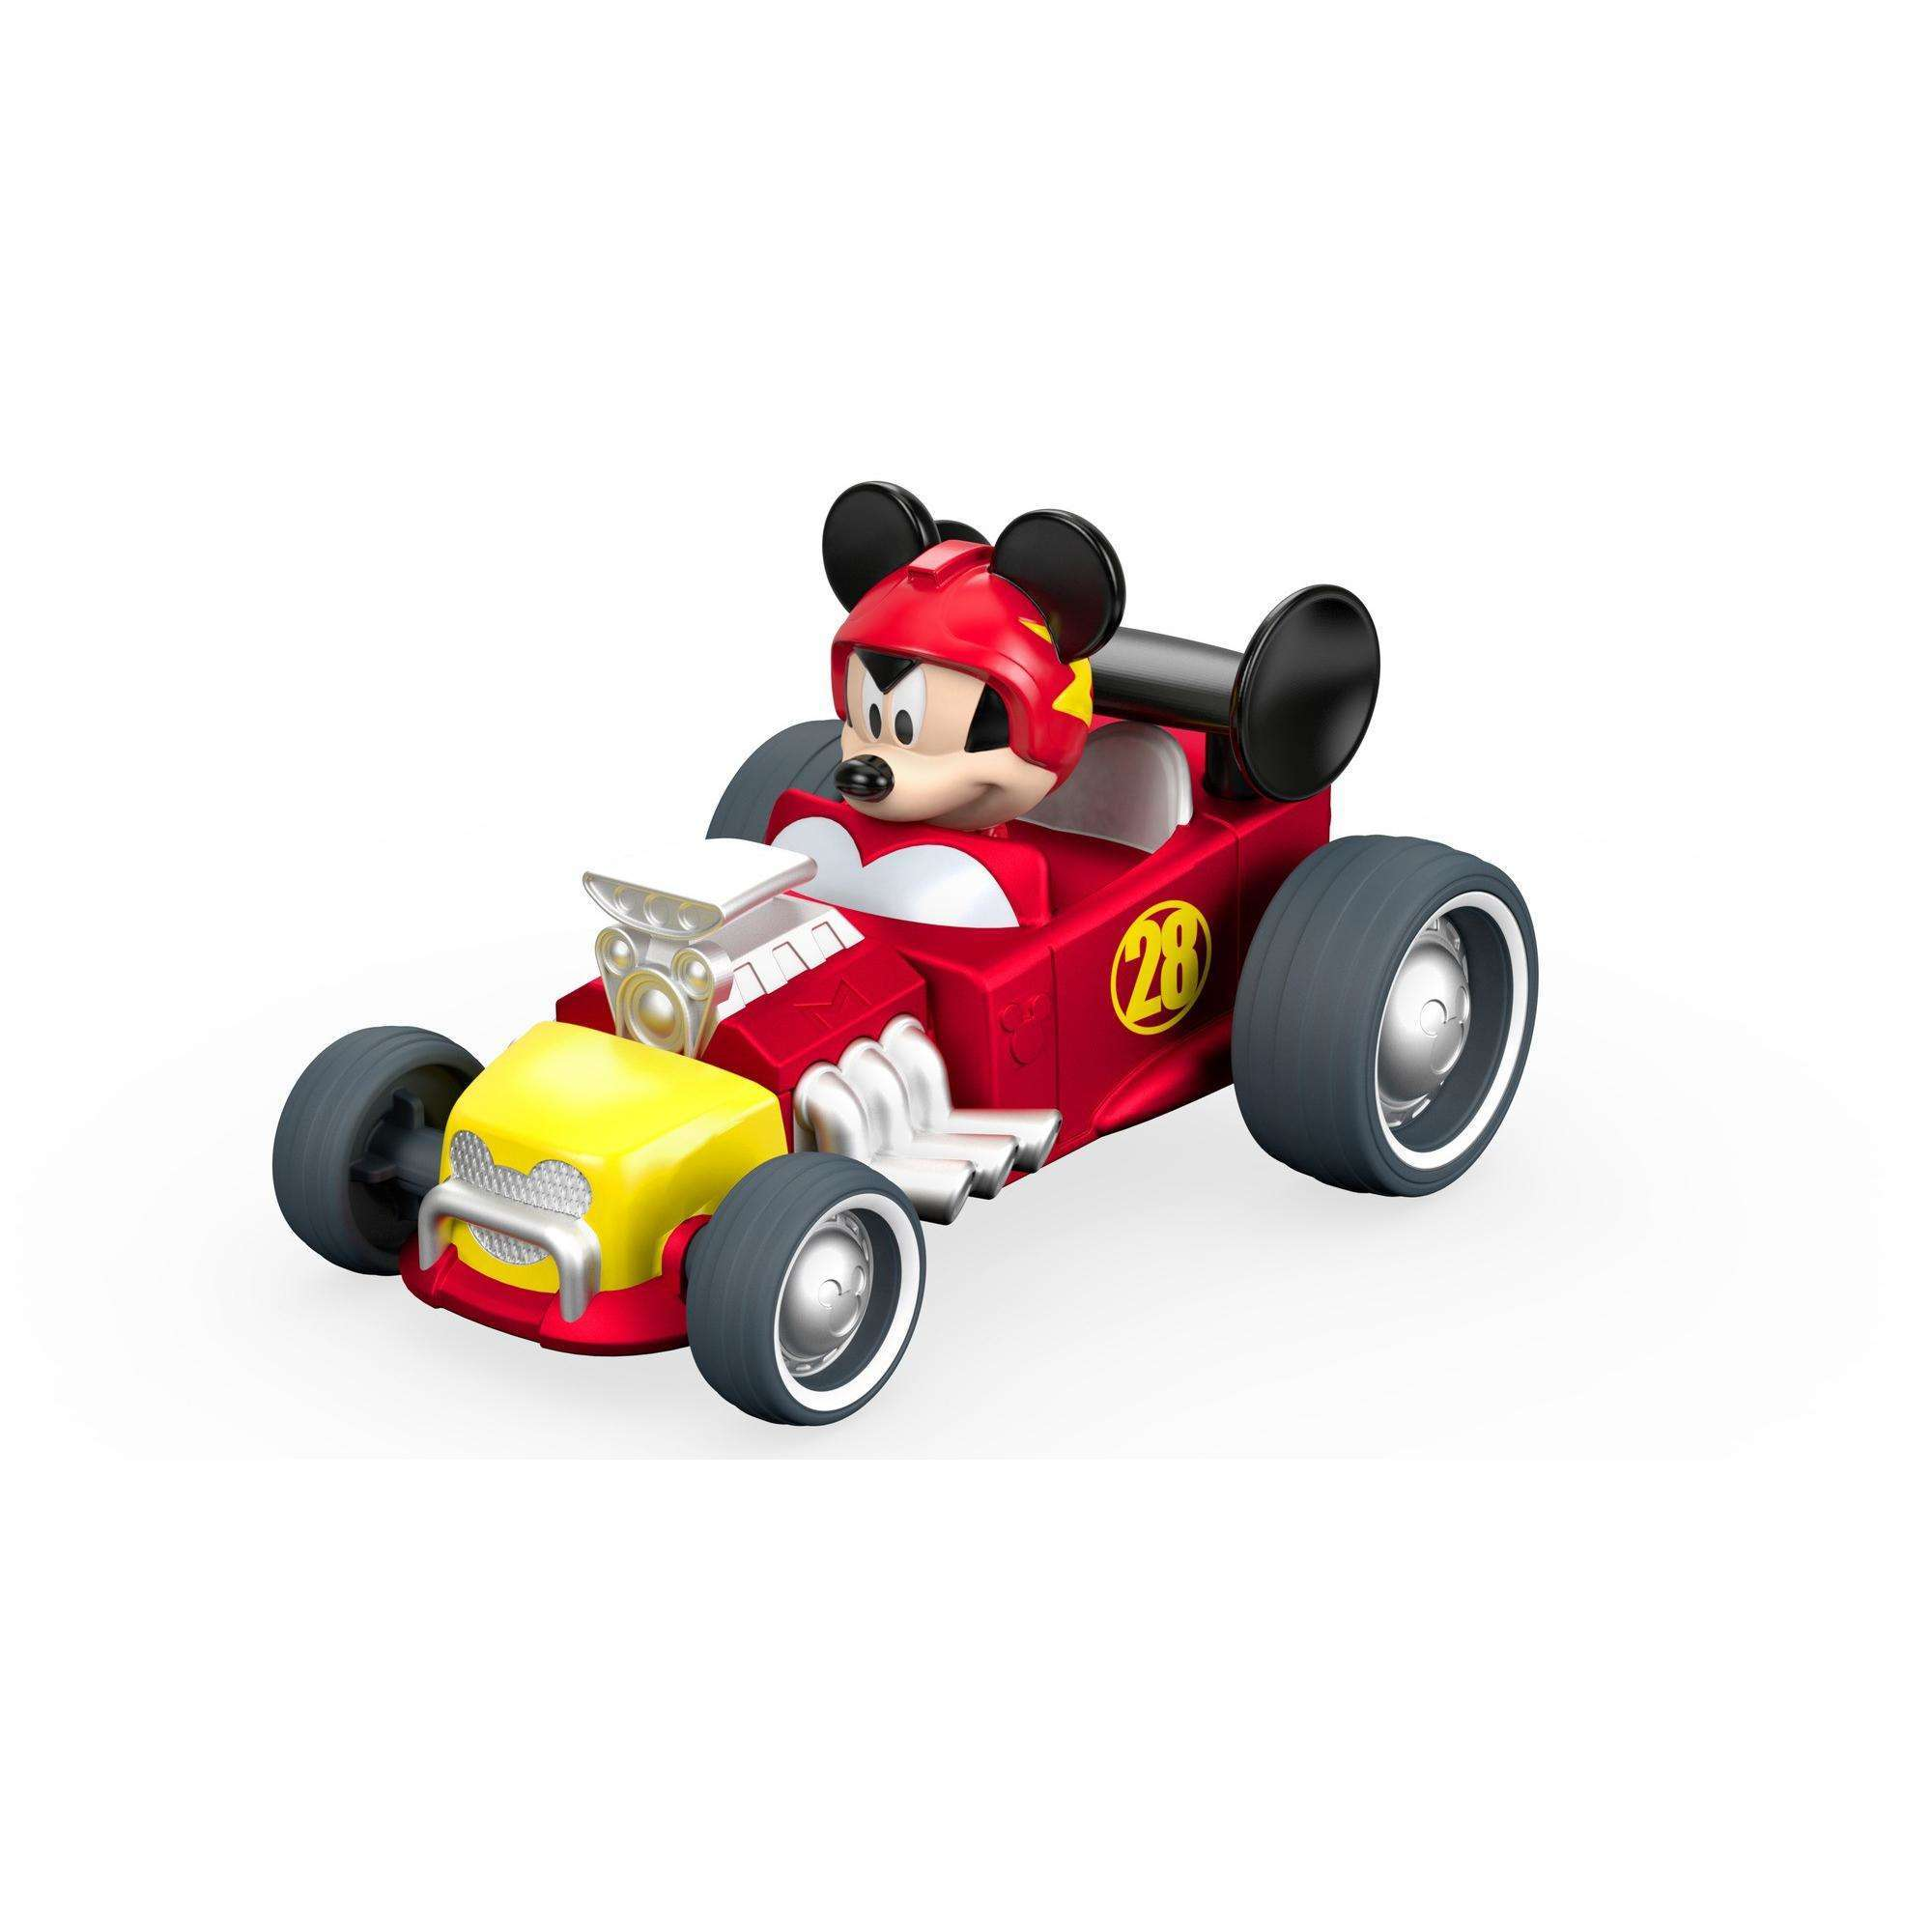 Disney Mickey Mouse Clubhouse Pull 'N Go Hot Rod by Mattel